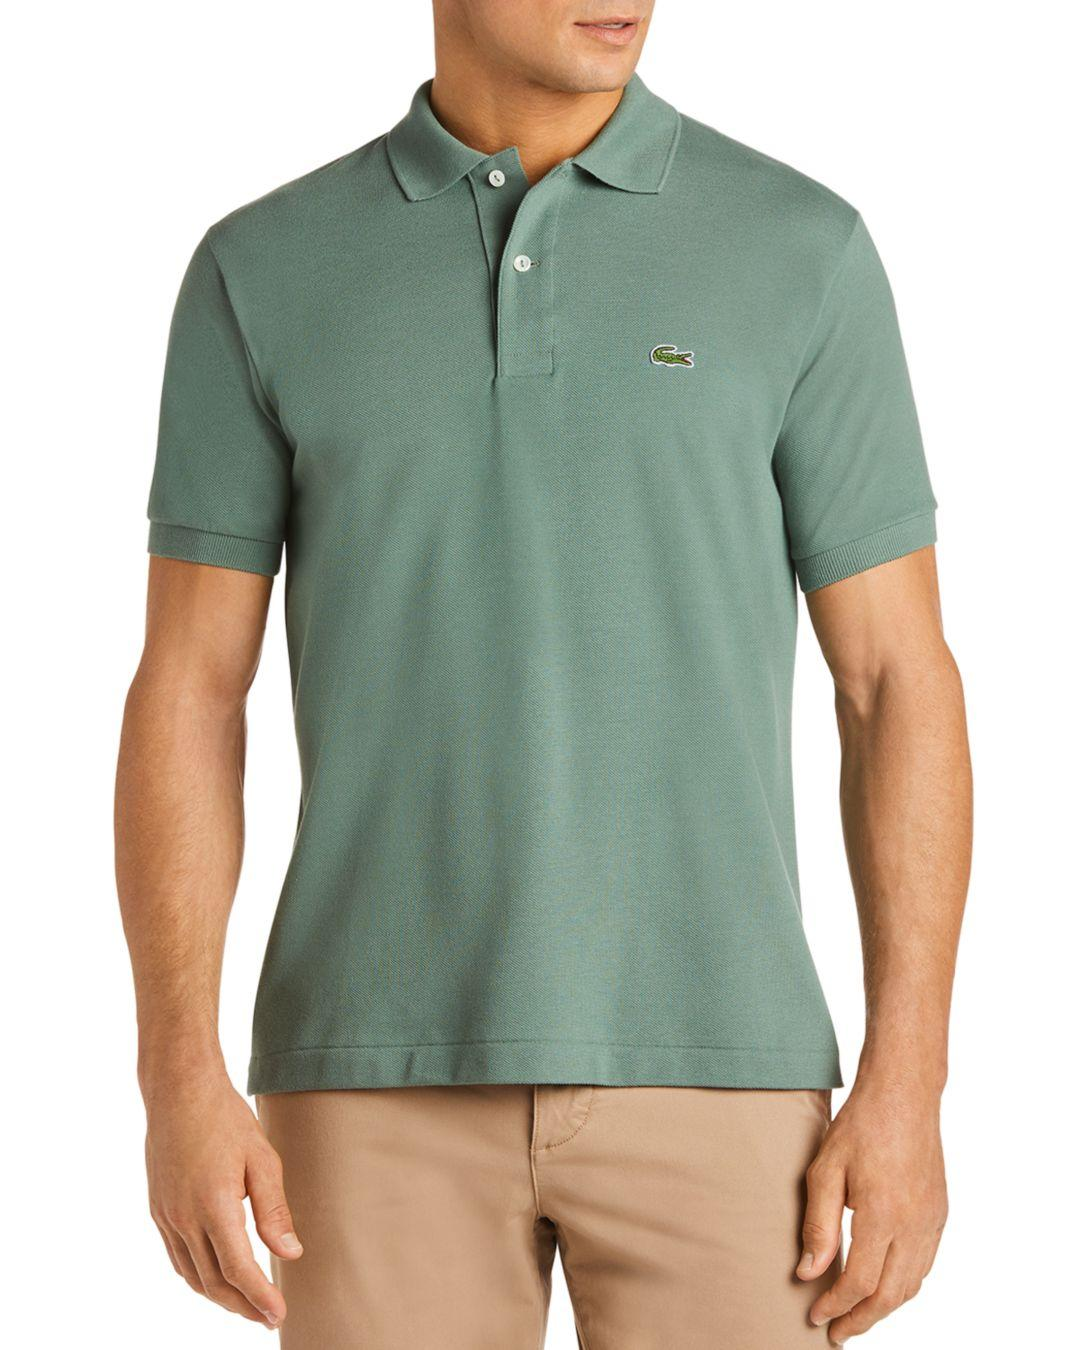 866359a9 Lyst - Lacoste Pique Polo - Classic Fit in Green for Men